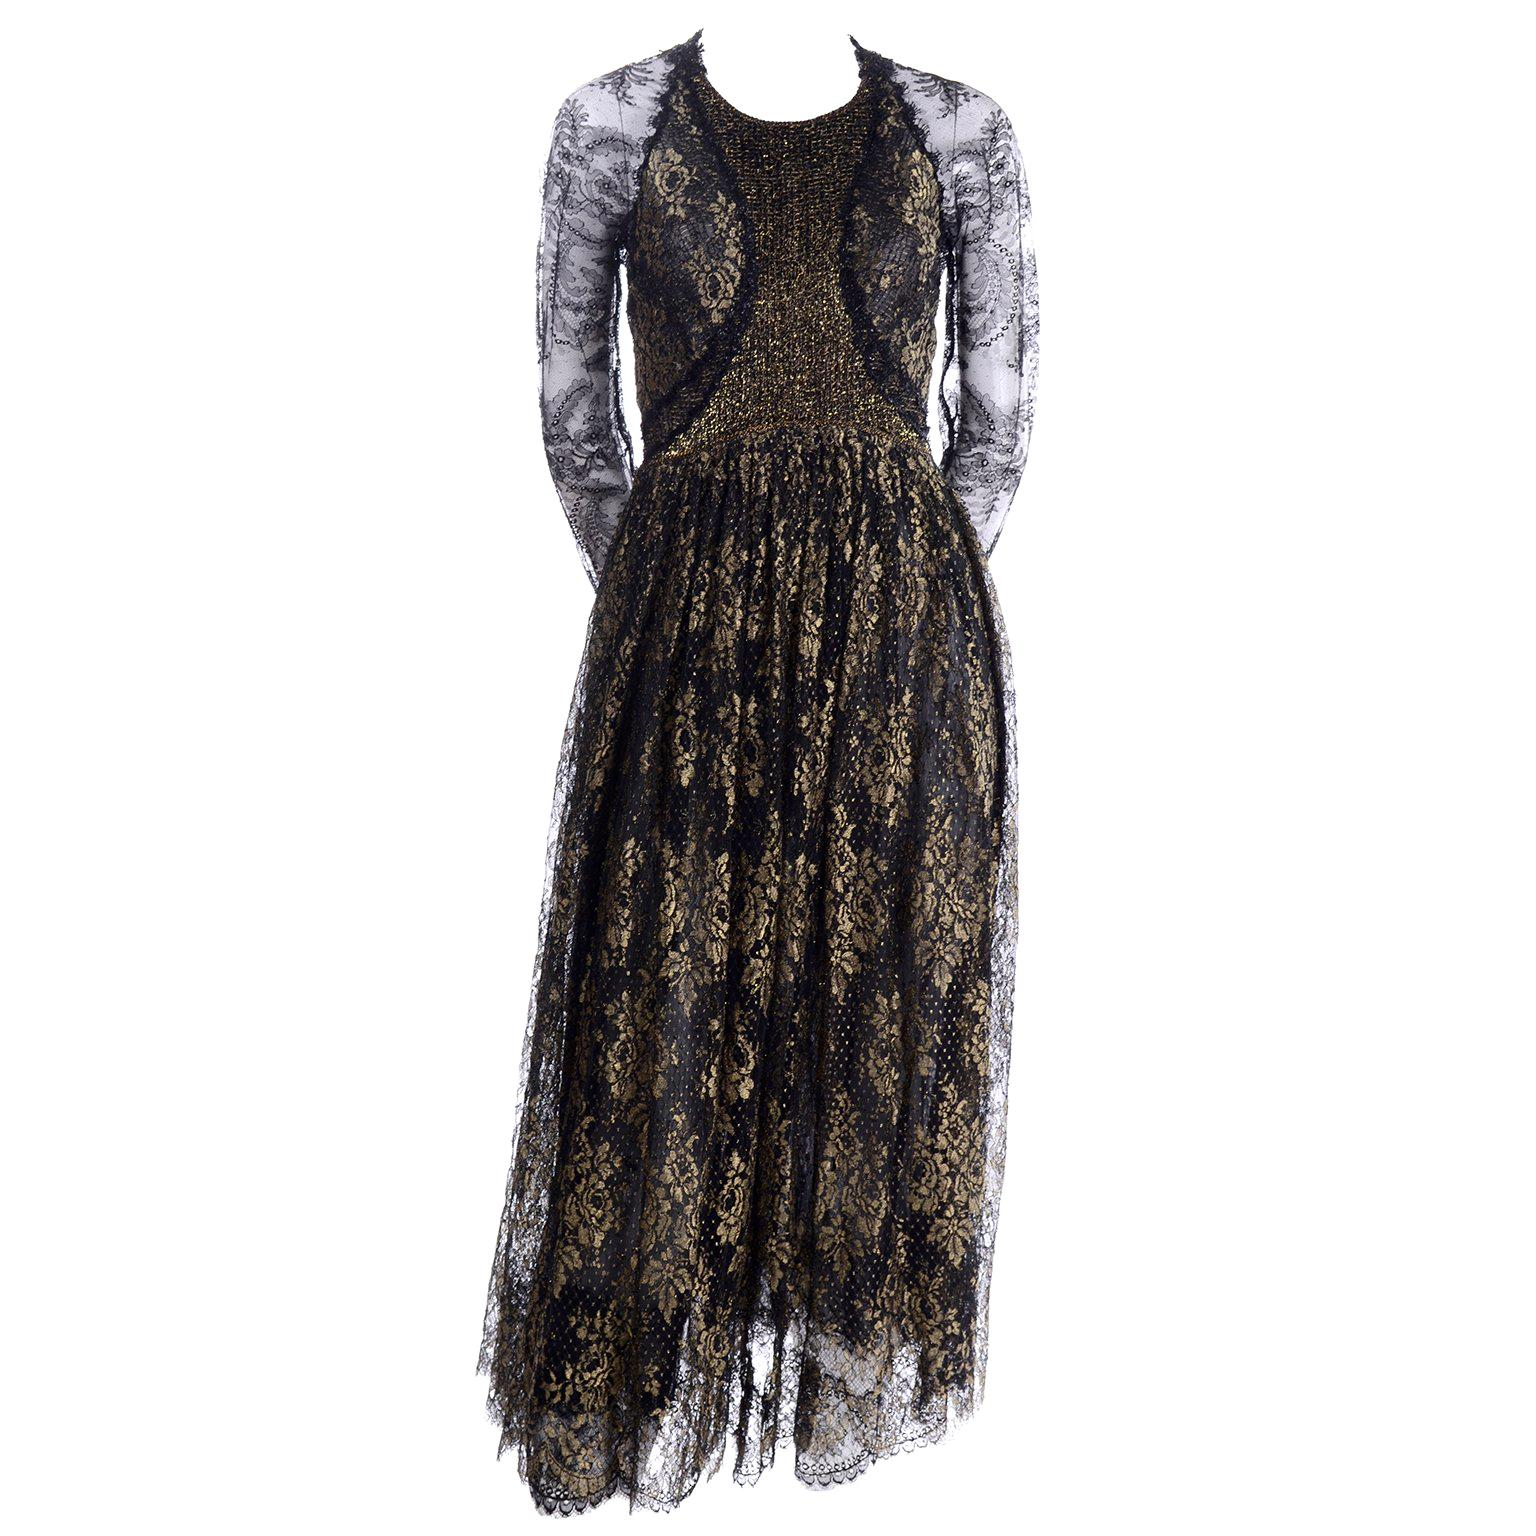 Rare Geoffrey Beene Vintage Gold Metallic & Black Lace Evening Dress